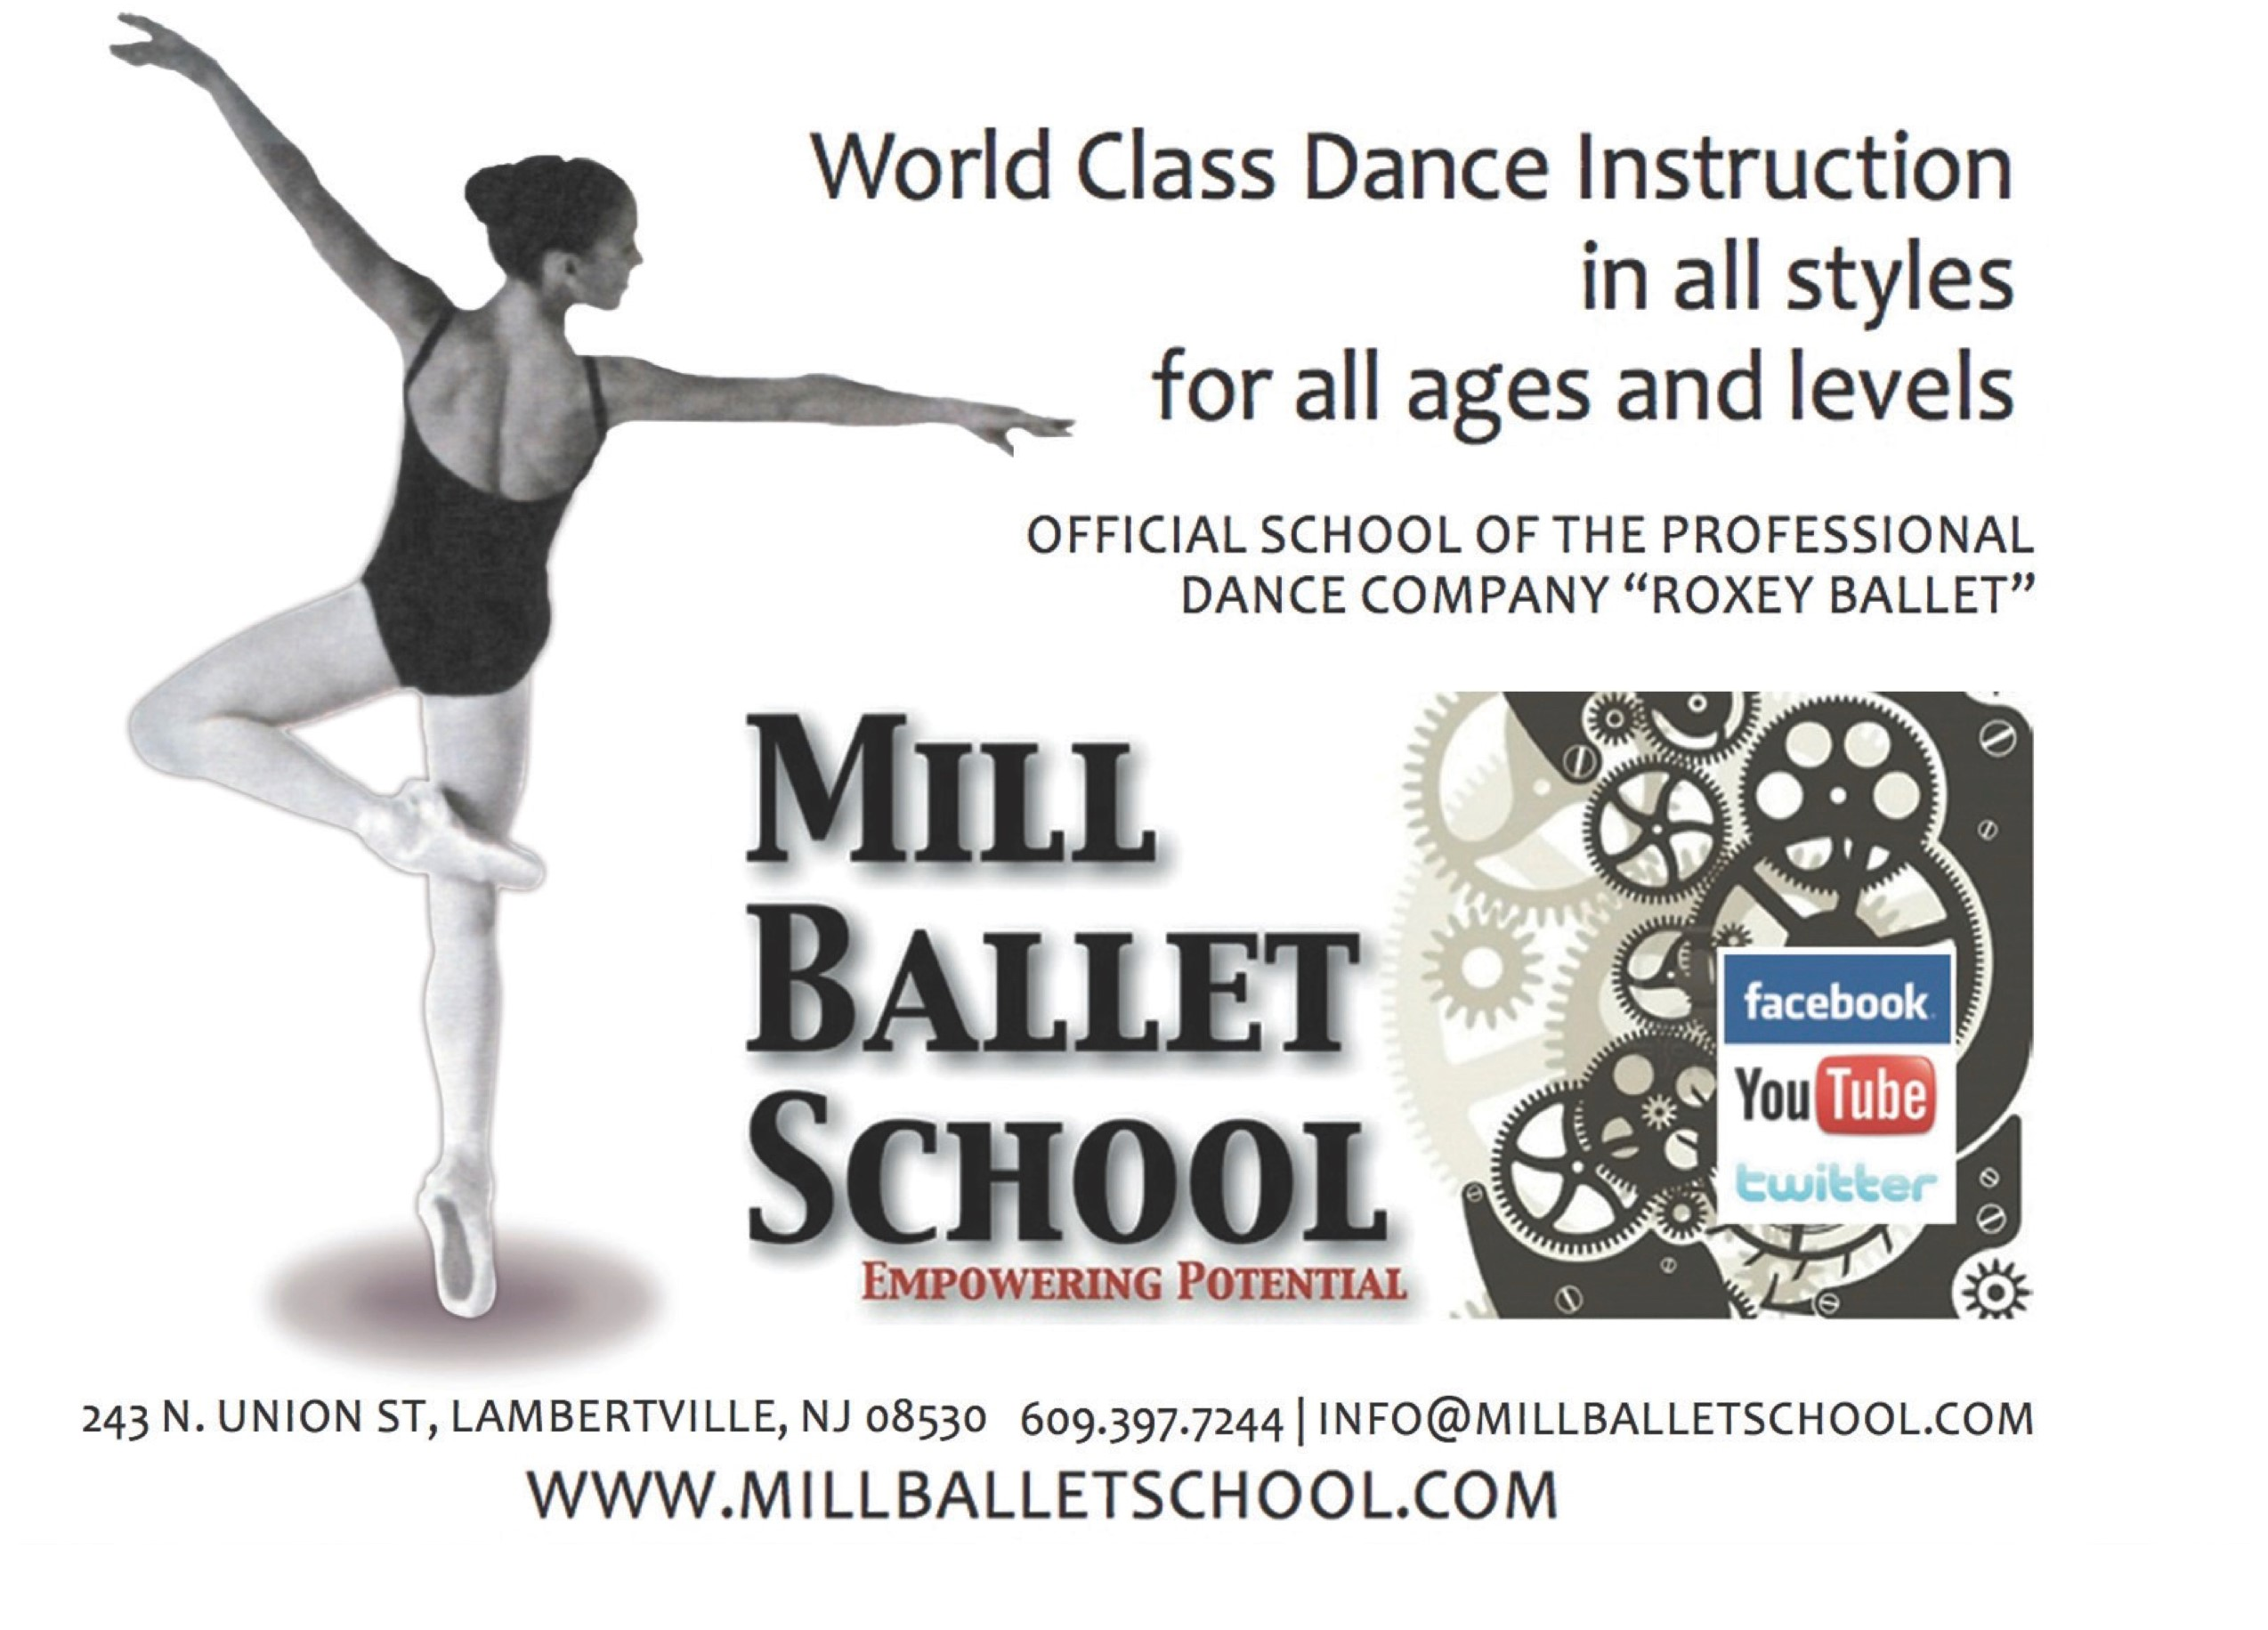 The Mill Ballet School